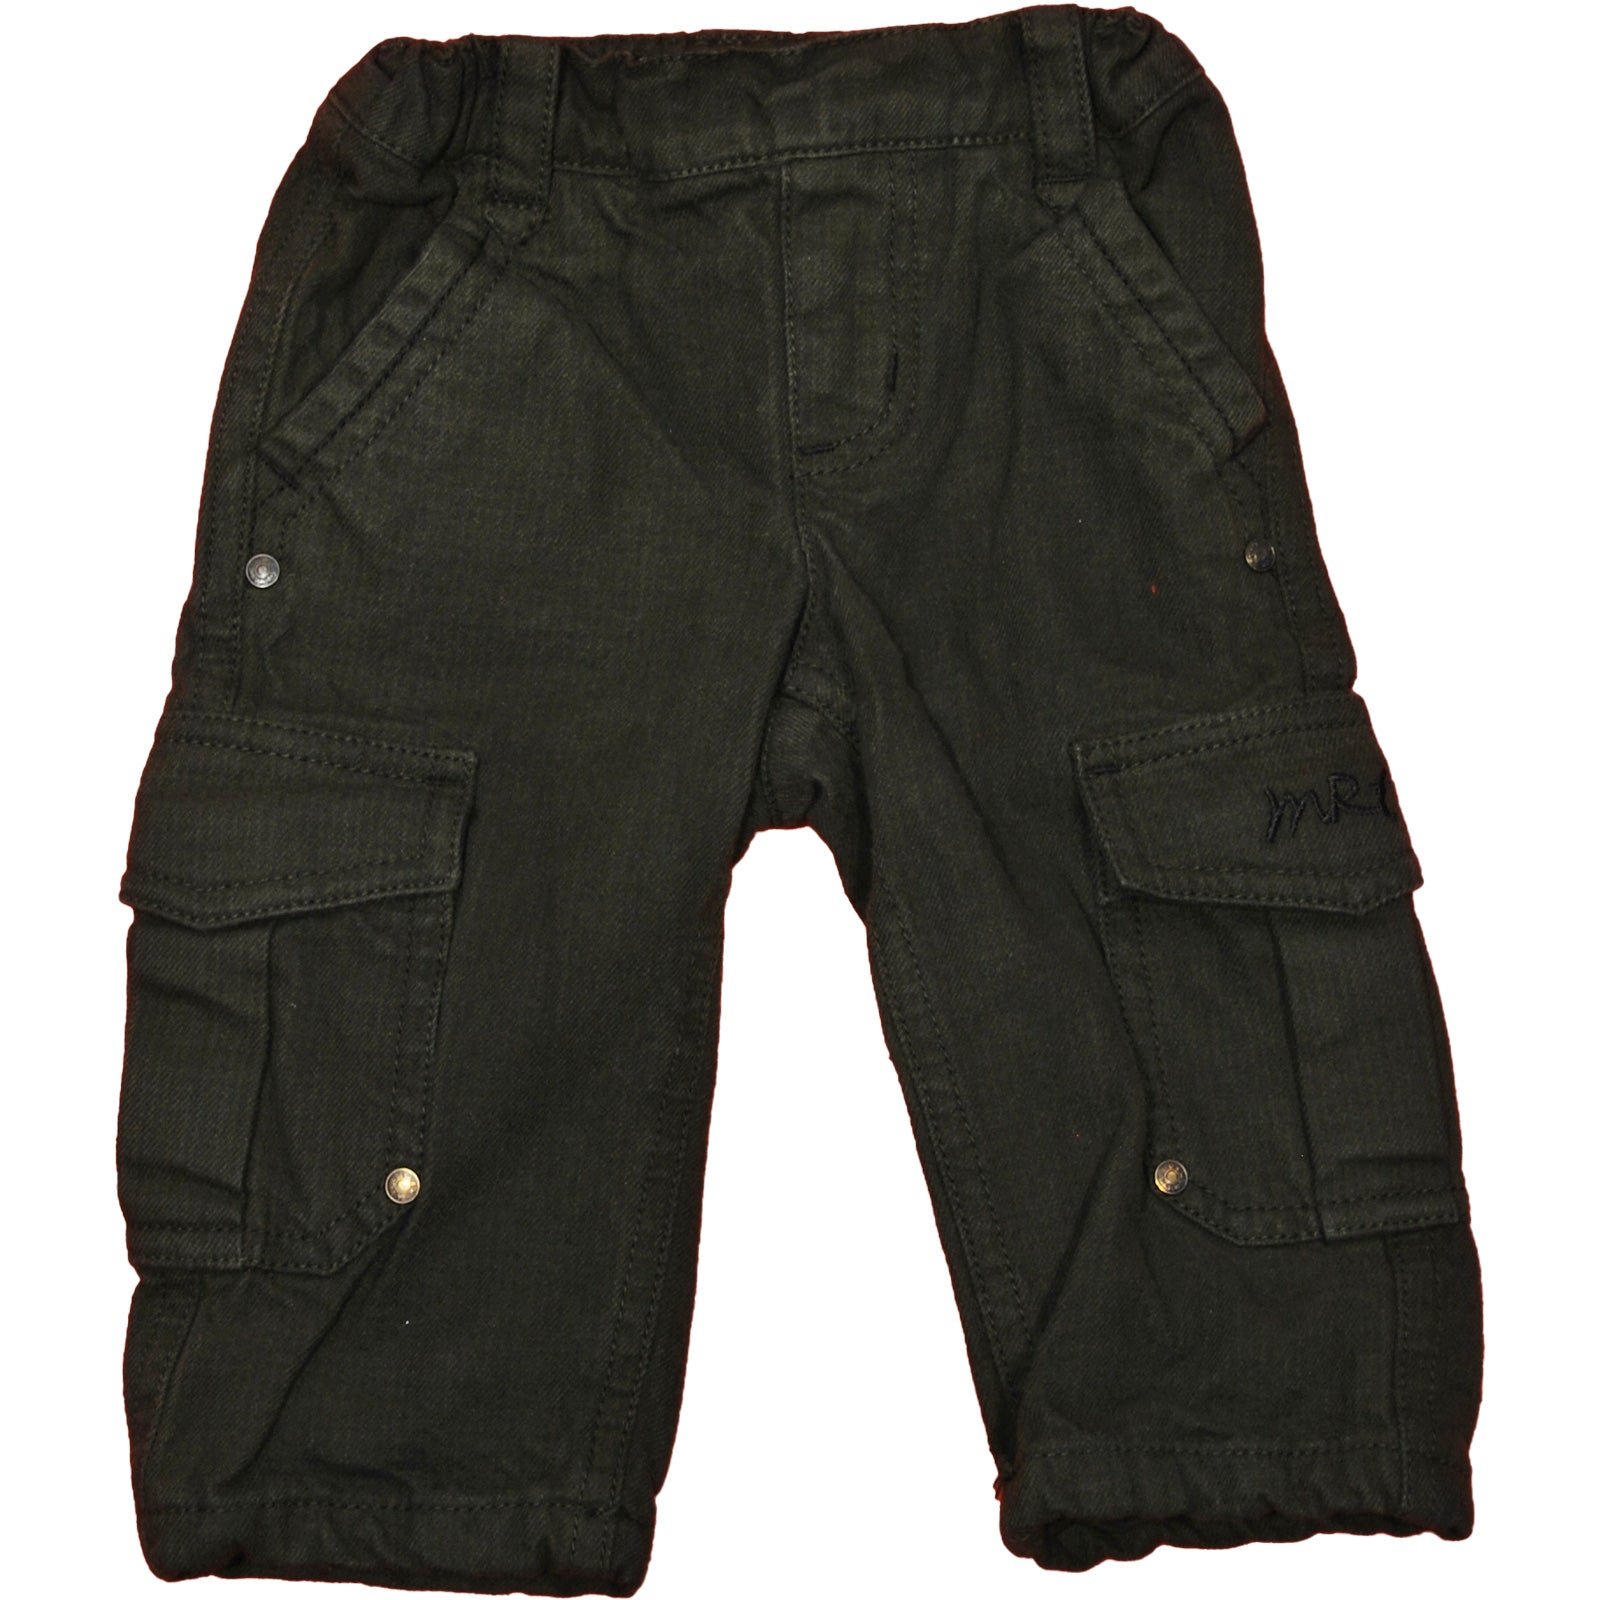 Trousers from the children's clothing line Mirtillo pants with side pockets, inner lining.    ...